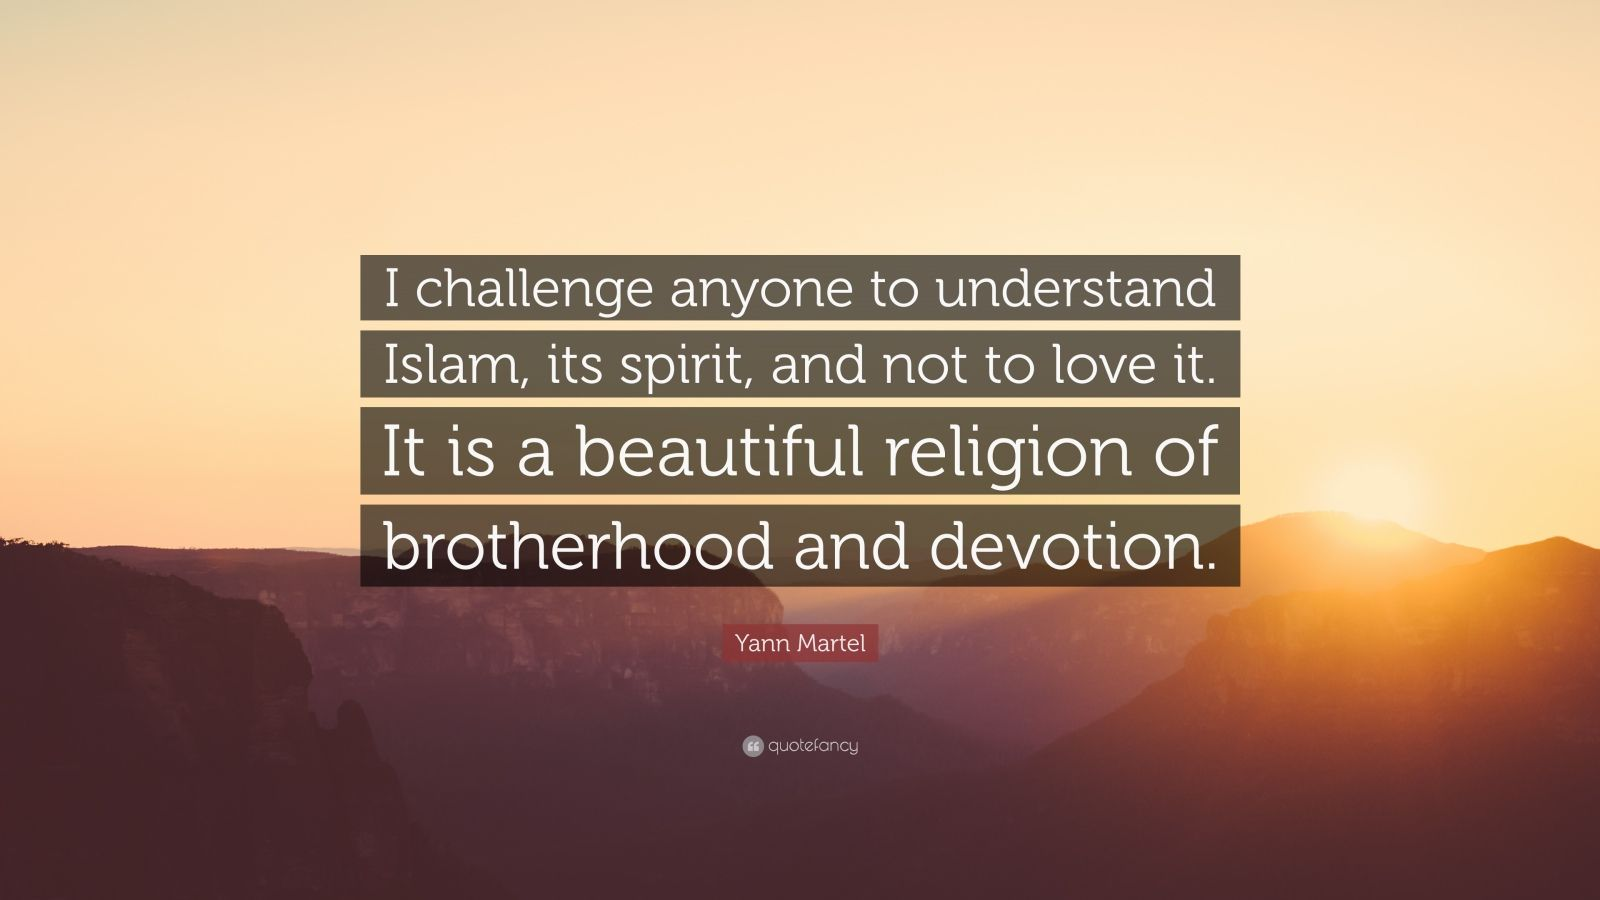 """Yann Martel Quote: """"I challenge anyone to understand Islam, its spirit, and not to love it. It is a beautiful religion of brotherhood and devotion."""""""